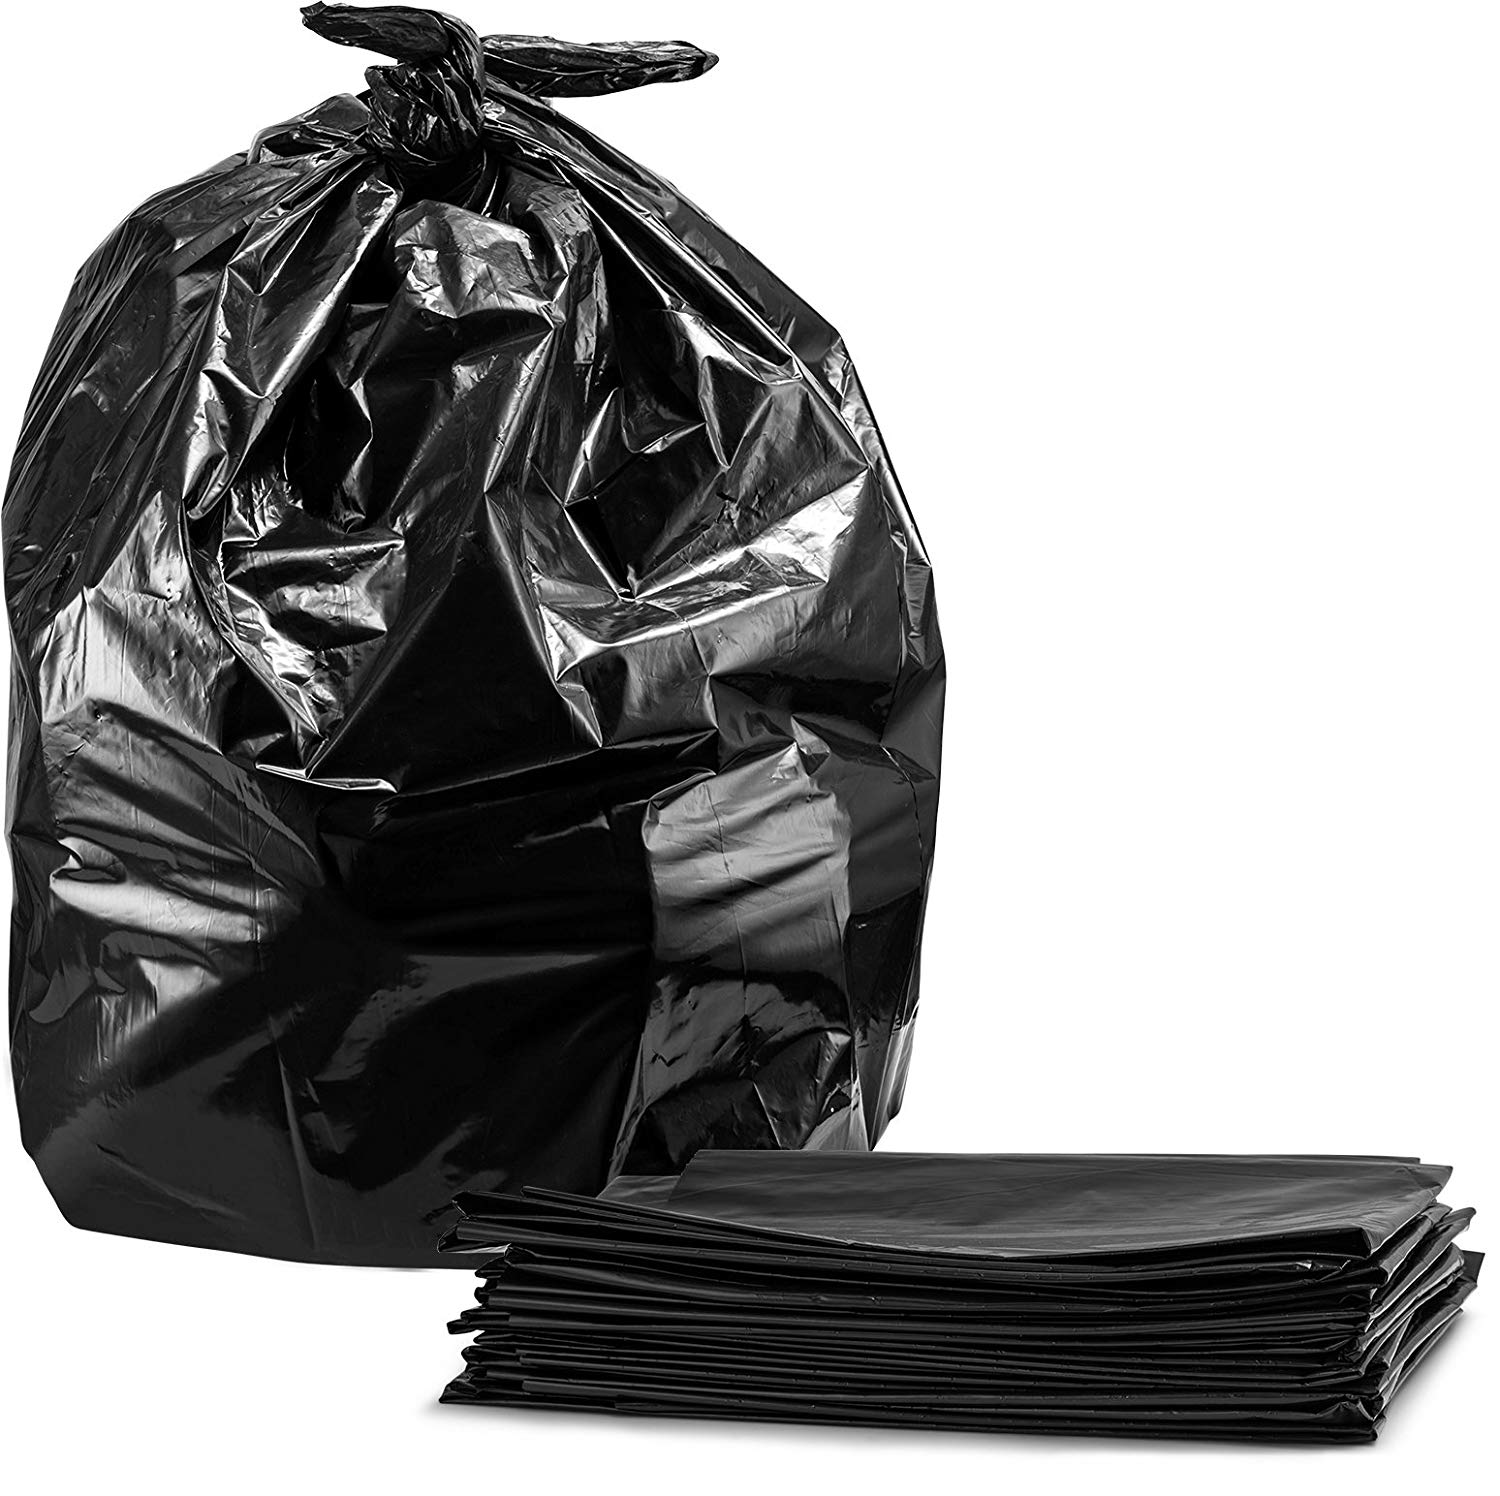 "Garbage Bags - Regular - 22"" x 24 (500/cs)"